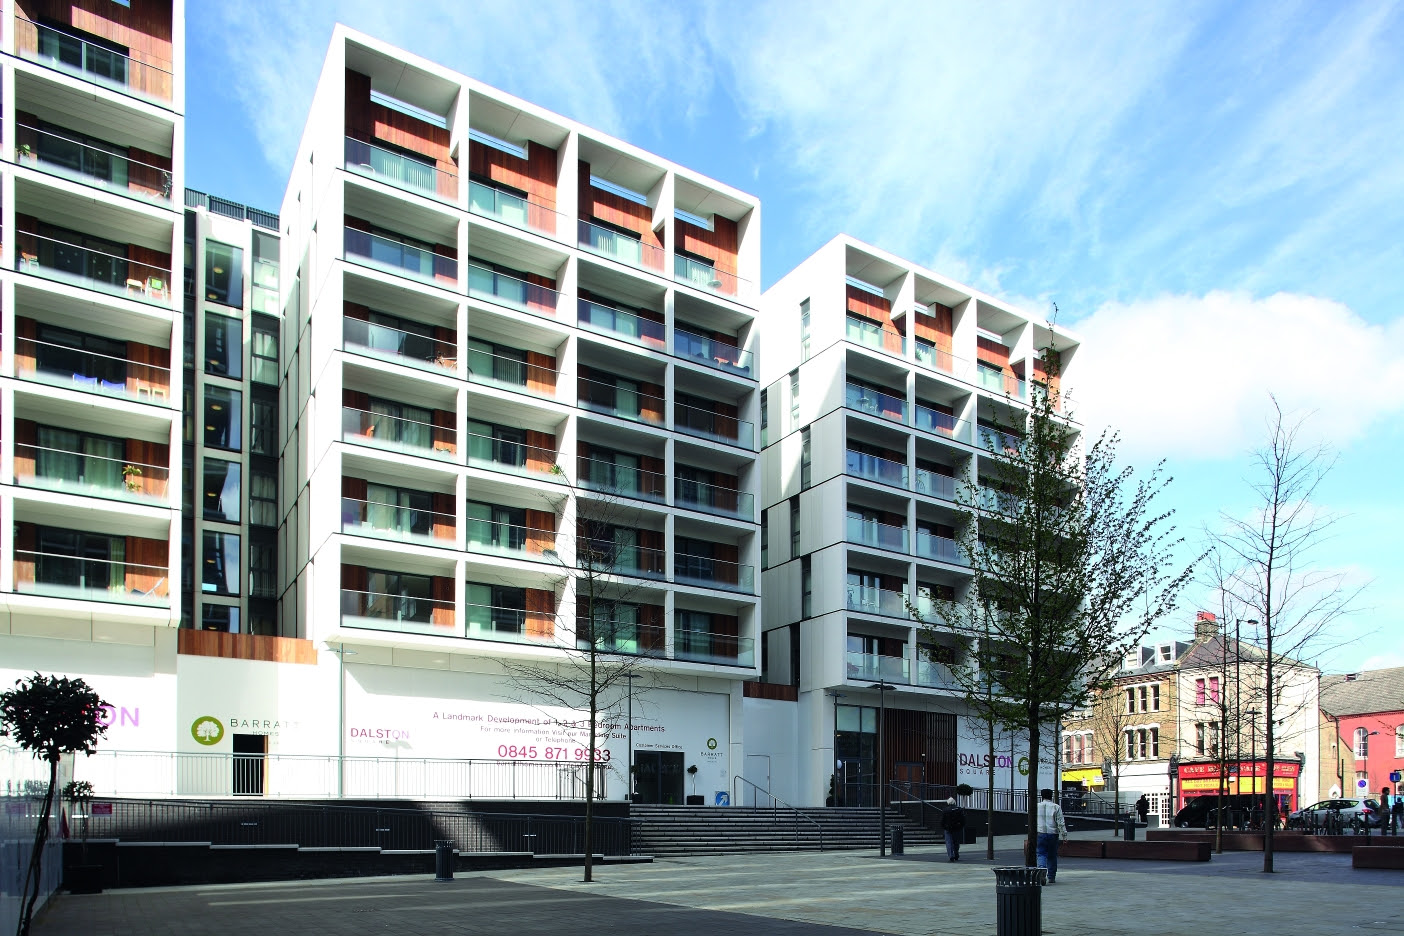 Matchmakers Wharf 1